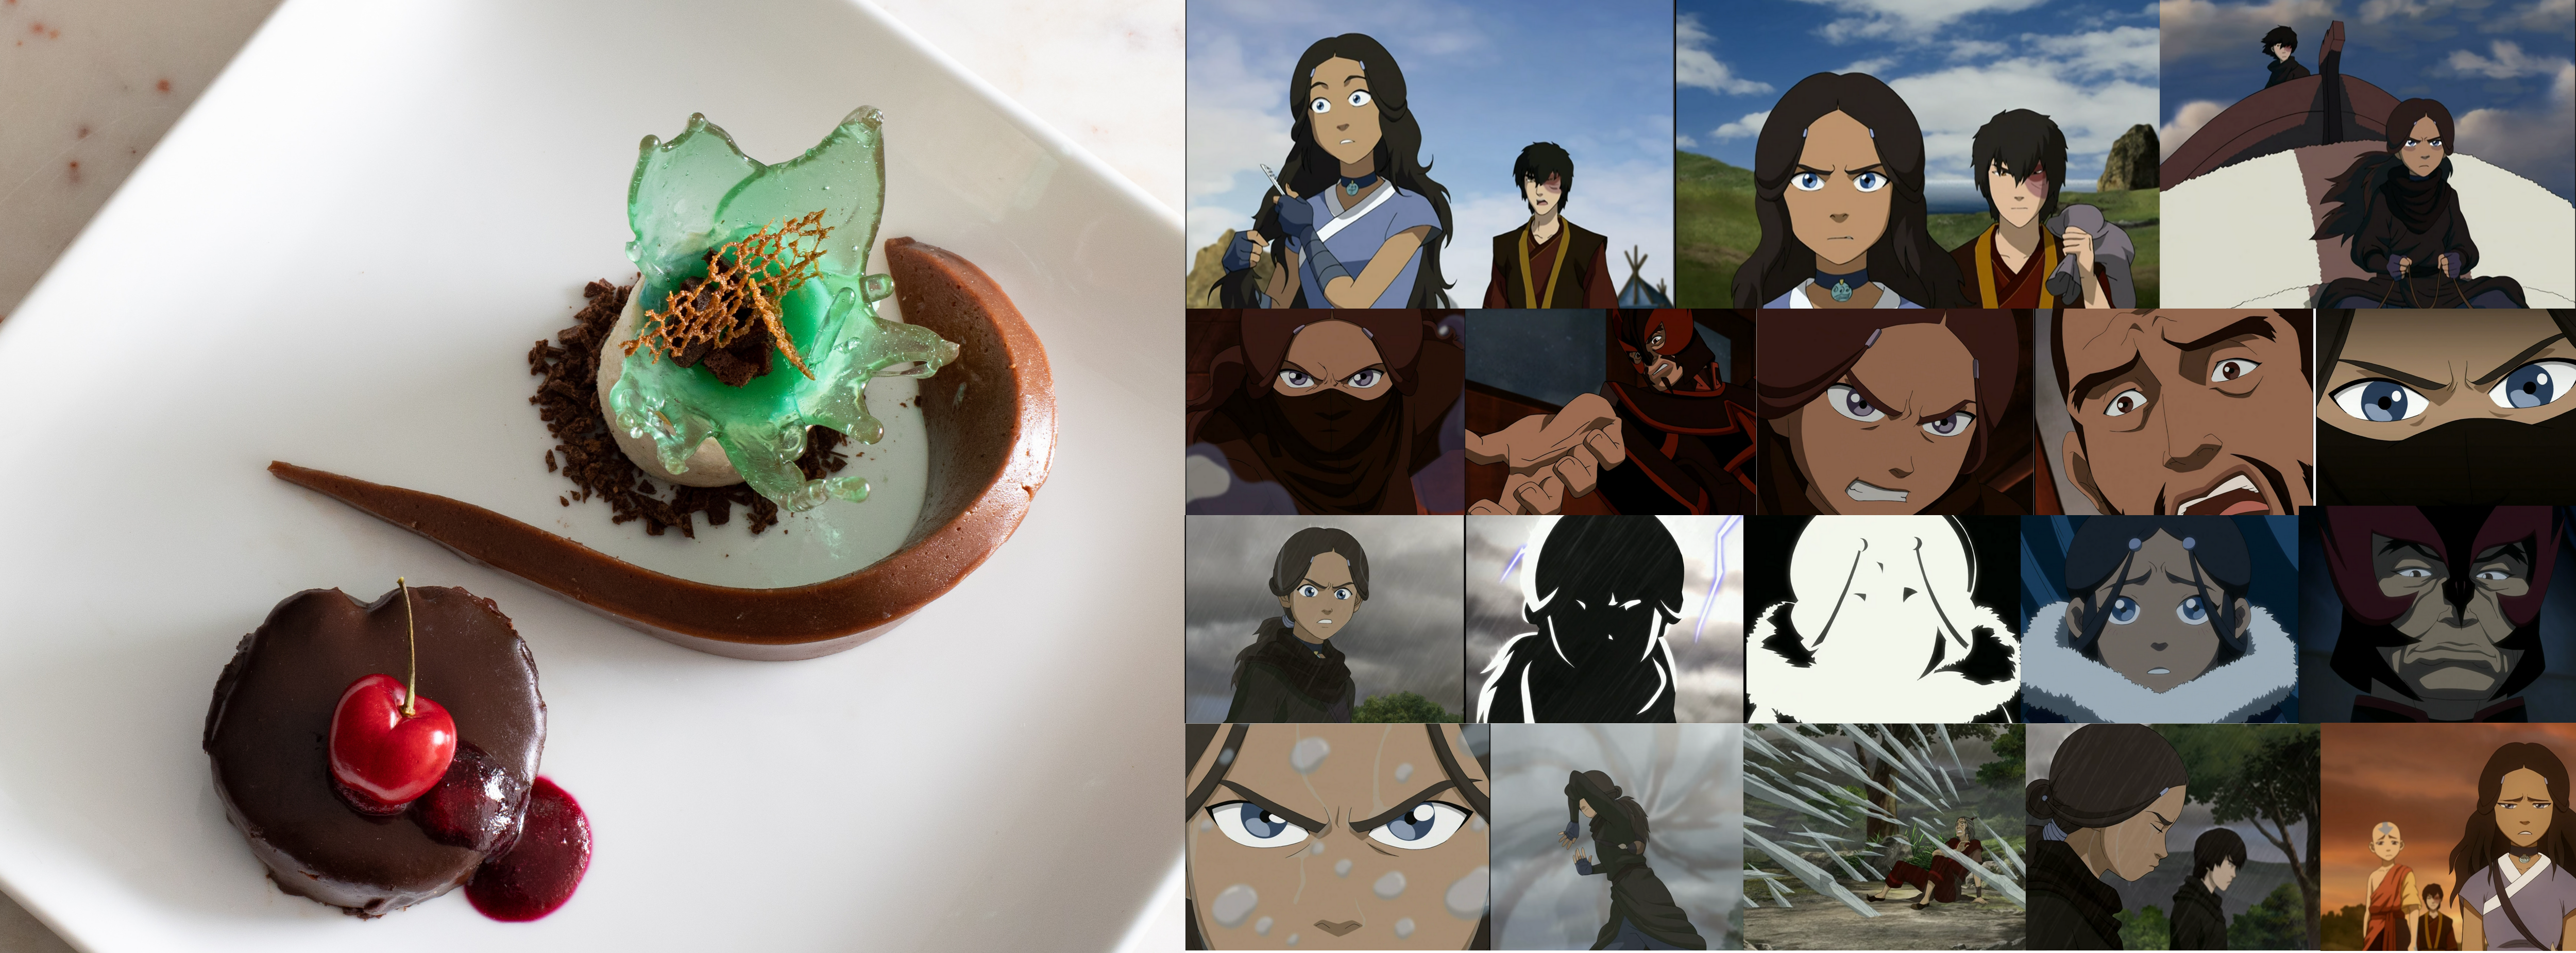 a picture of one of my desserts and scene from the southern raiders